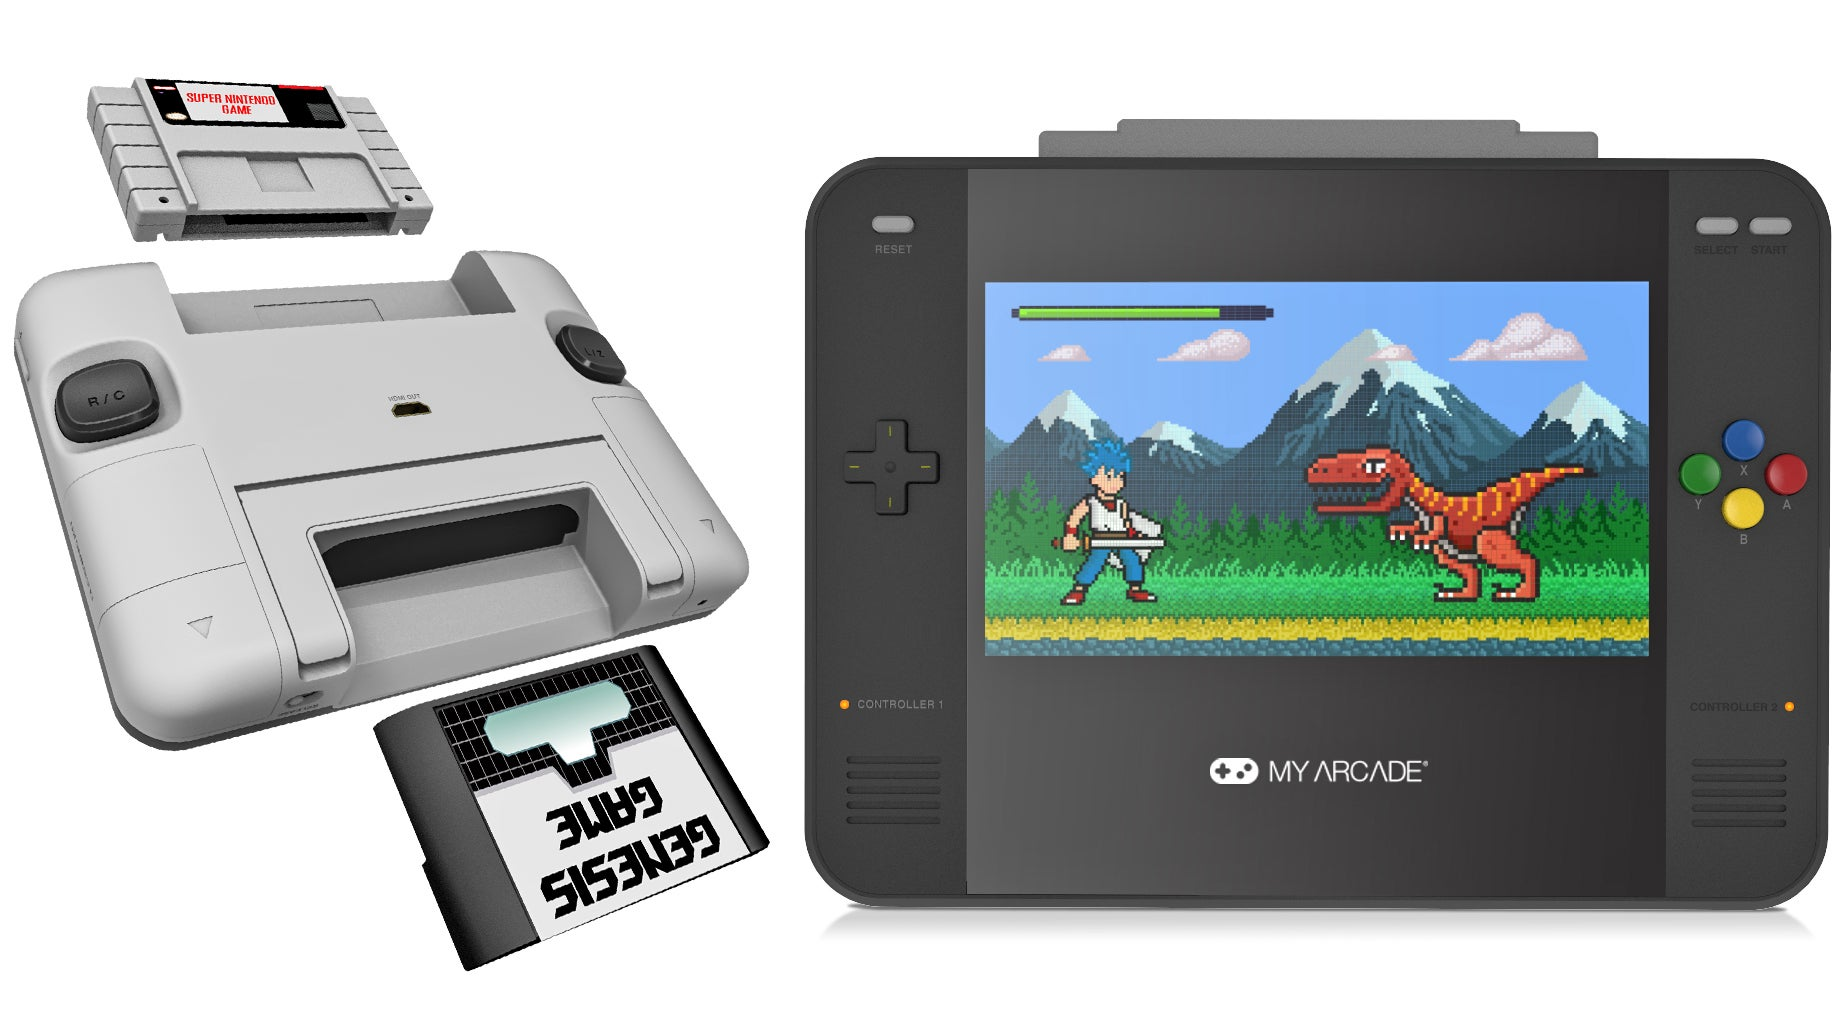 The Super Retro Champ Plays SNES And Sega Genesis Cartridges, Bringing Peace To Retro Gaming